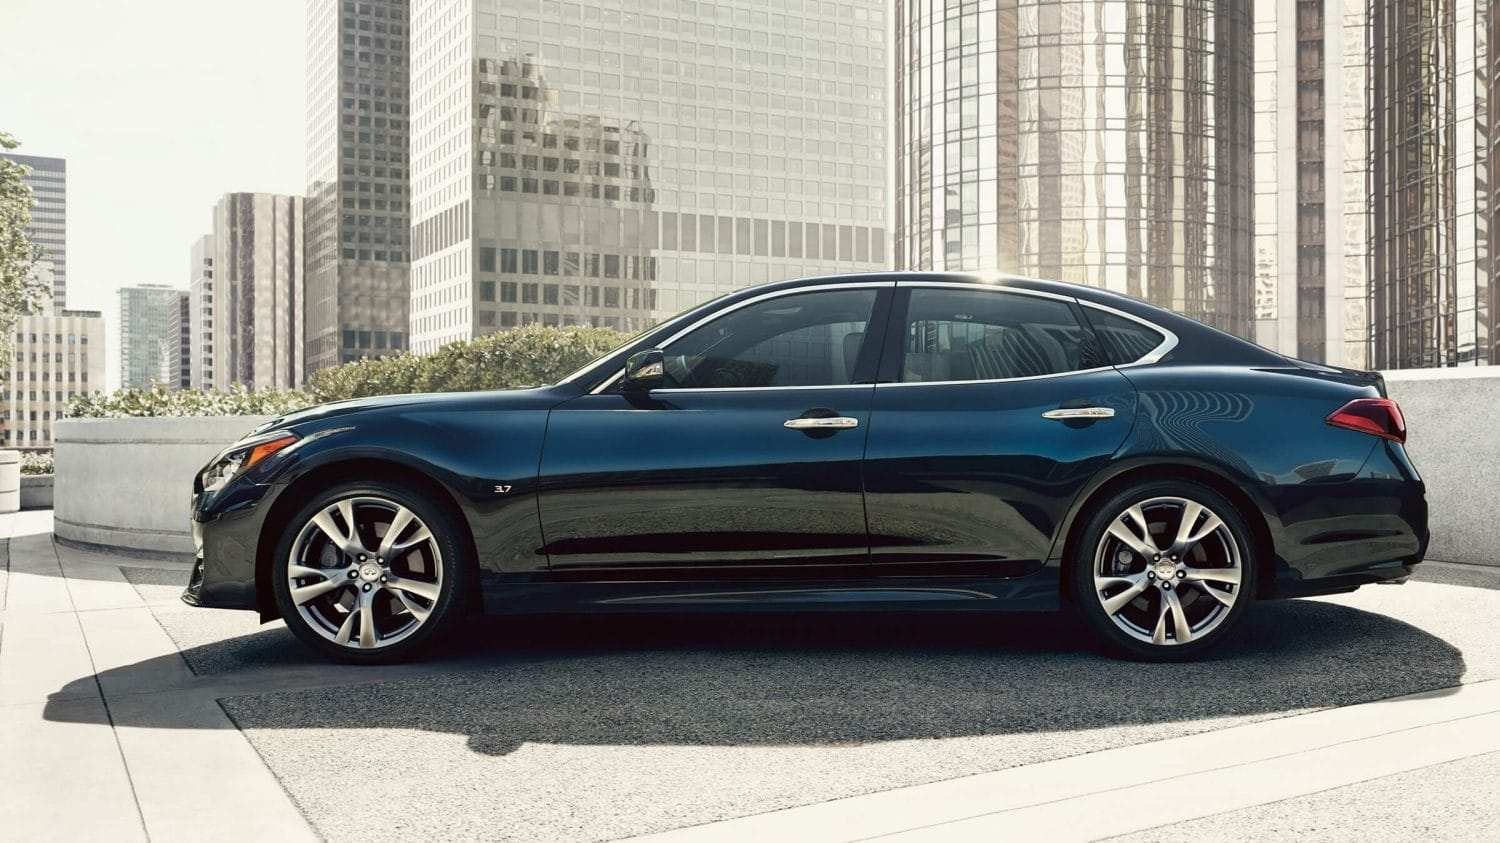 62 Great 2019 Infiniti Q70 Redesign Overview with 2019 Infiniti Q70 Redesign